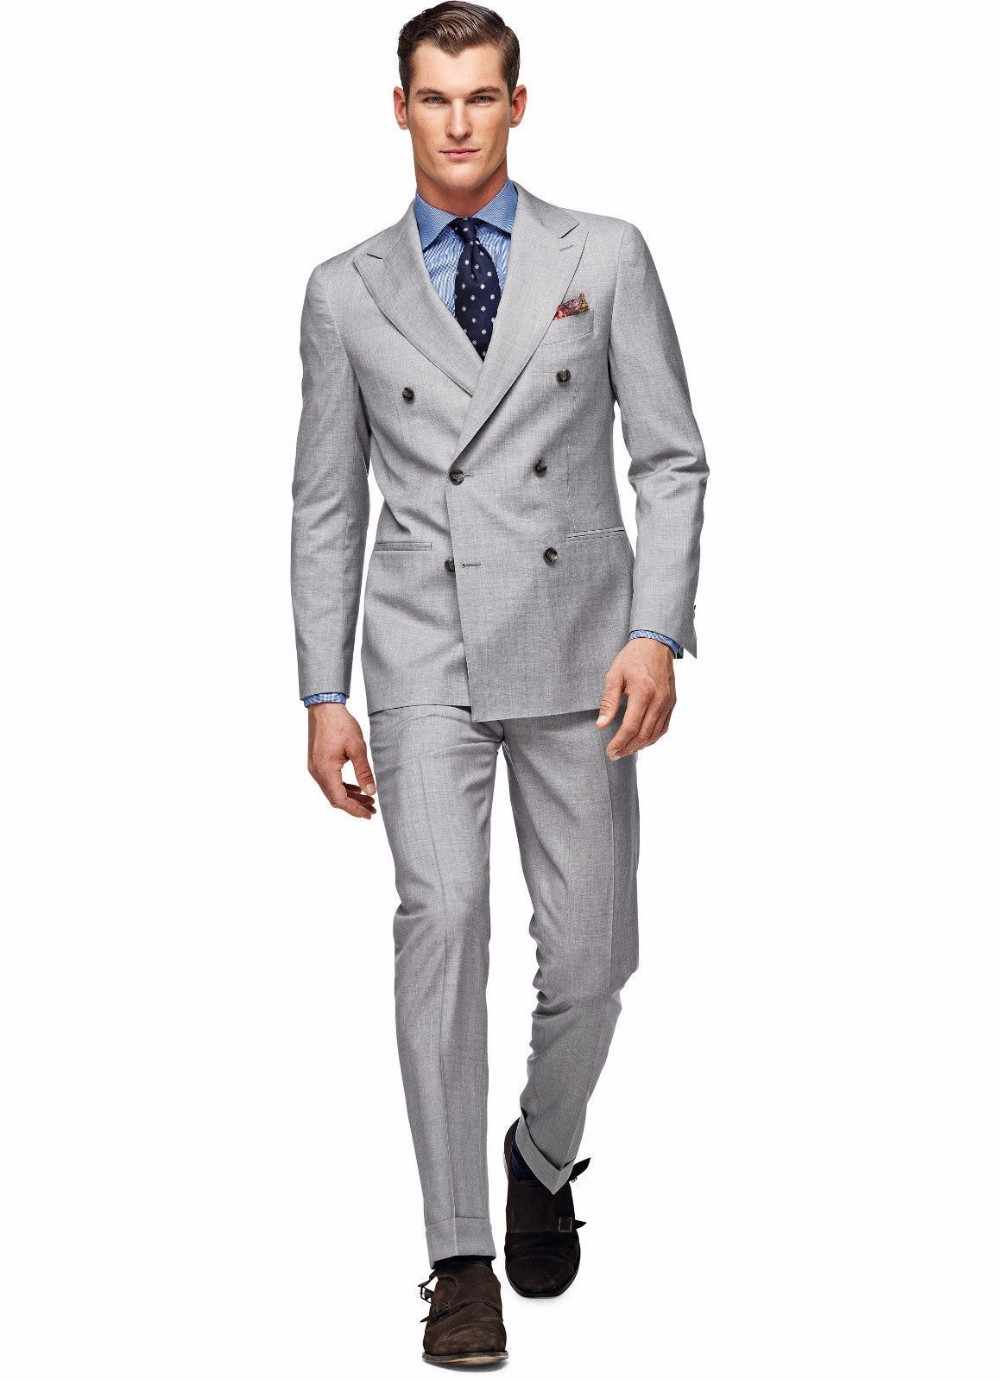 Peaked Lapel Breasted Suits Light Gray Fashion Tuxedos Blazer Men (Jacket+Pants+Tie+Handkerchiefs)Custome Homme Terno Masculino